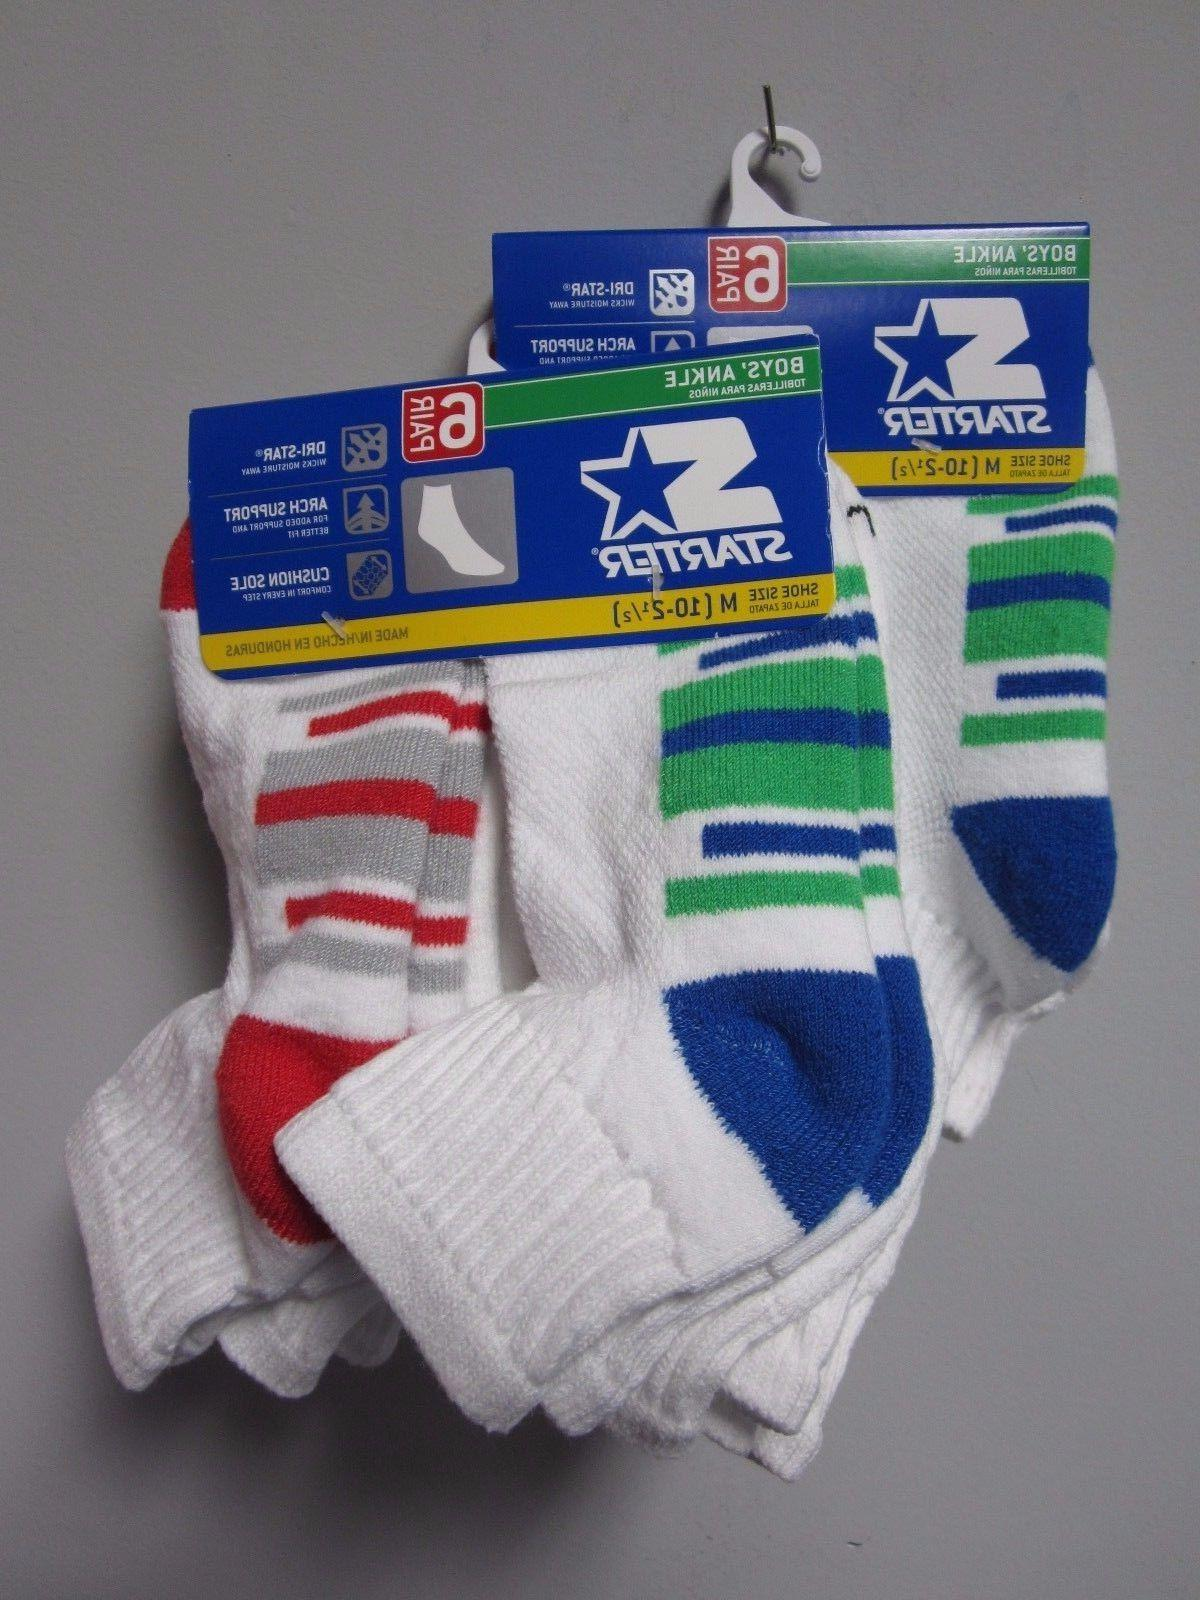 Starter Boys' Ankle Socks 6 Pair Shoe Size M  Now TWO PACKS!